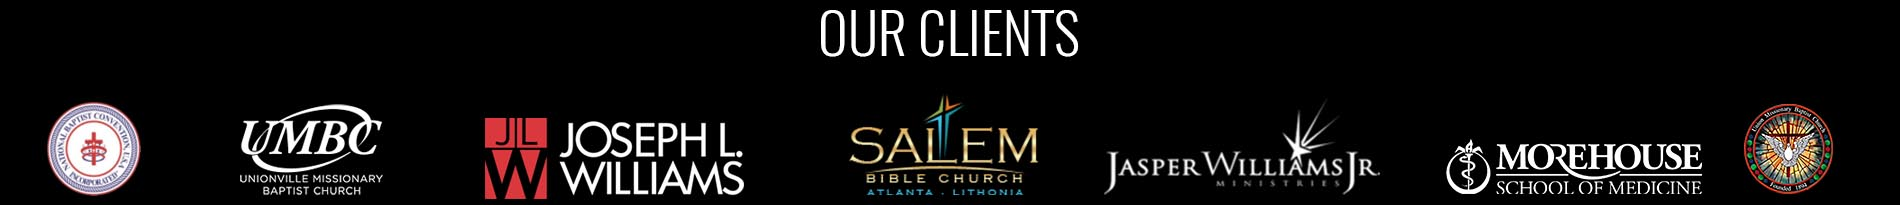 Church Video Announcement Service Client Logos